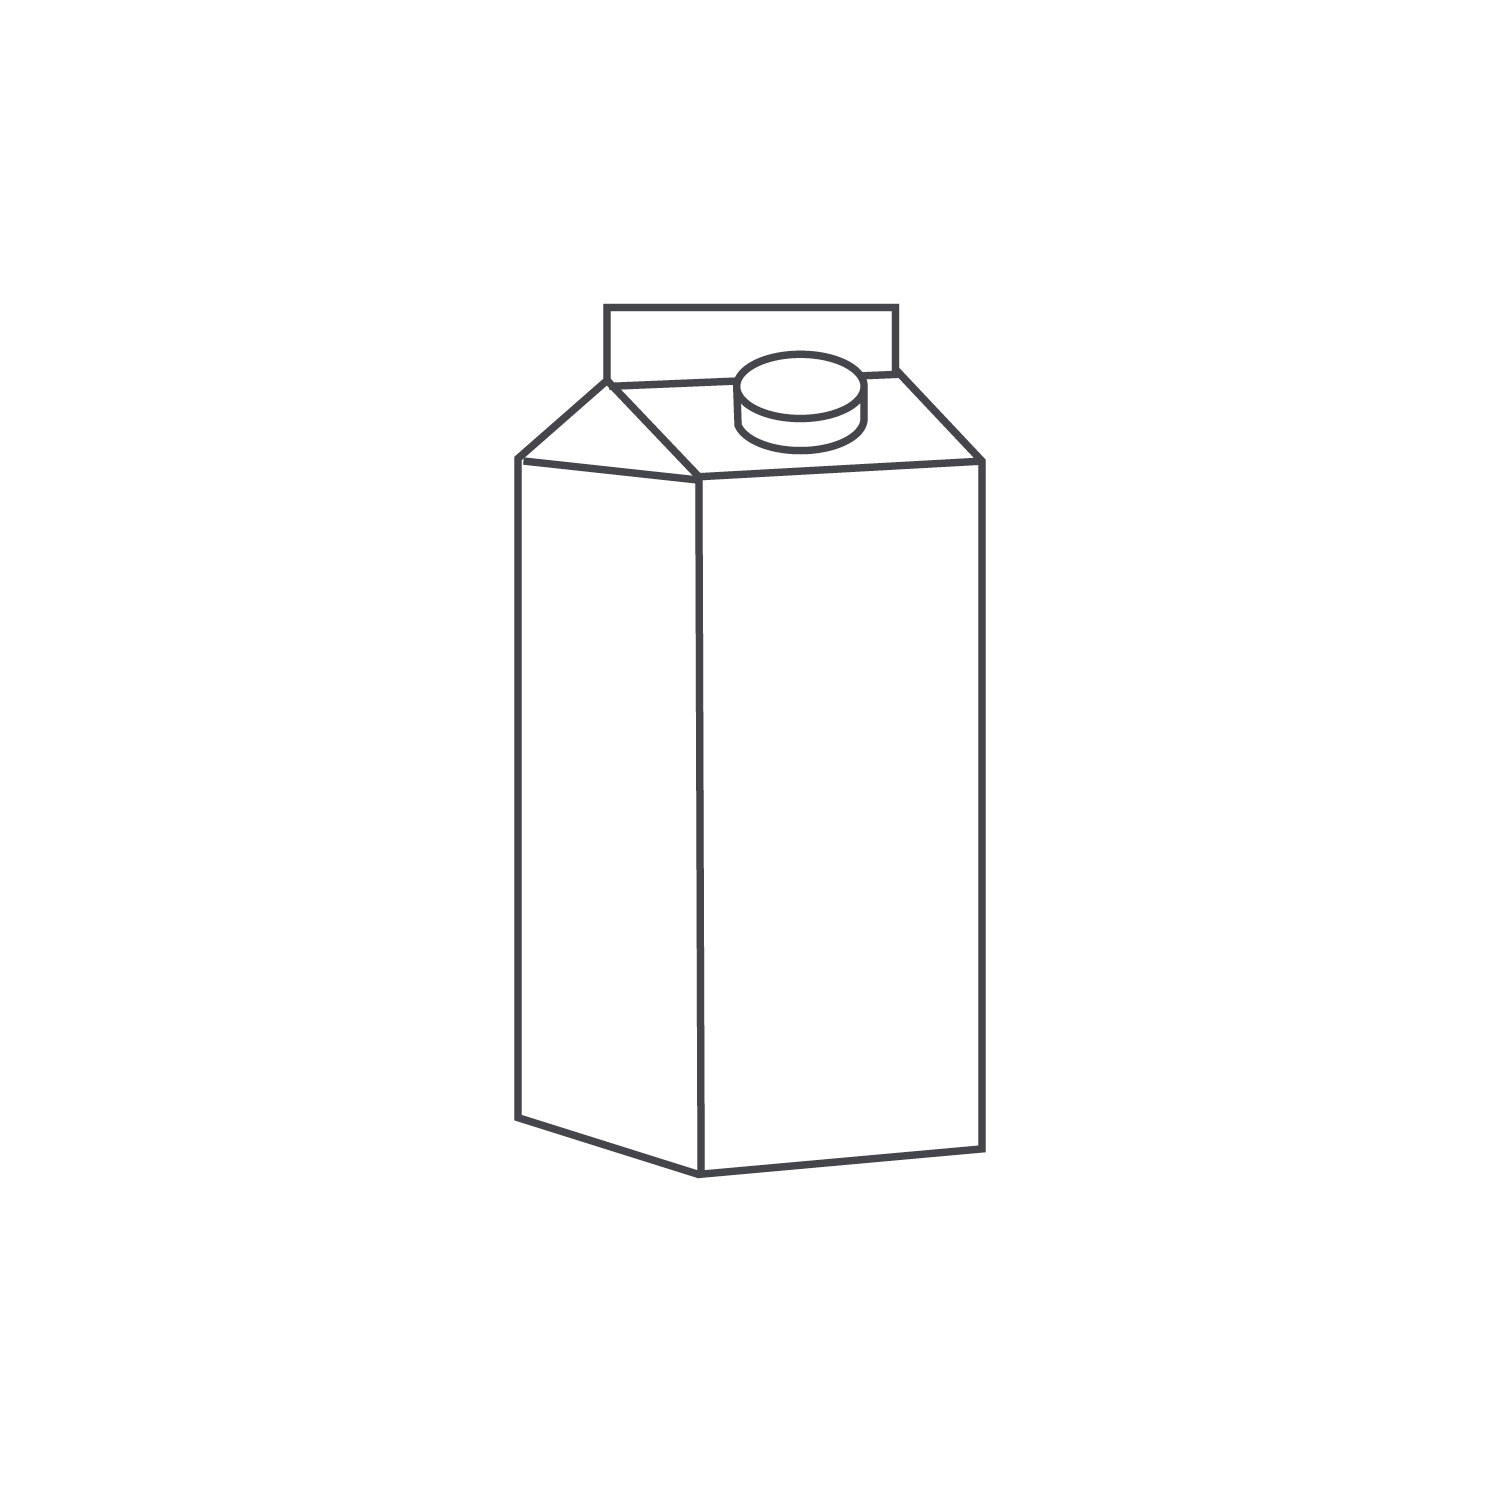 Dairy-Icon70.jpg